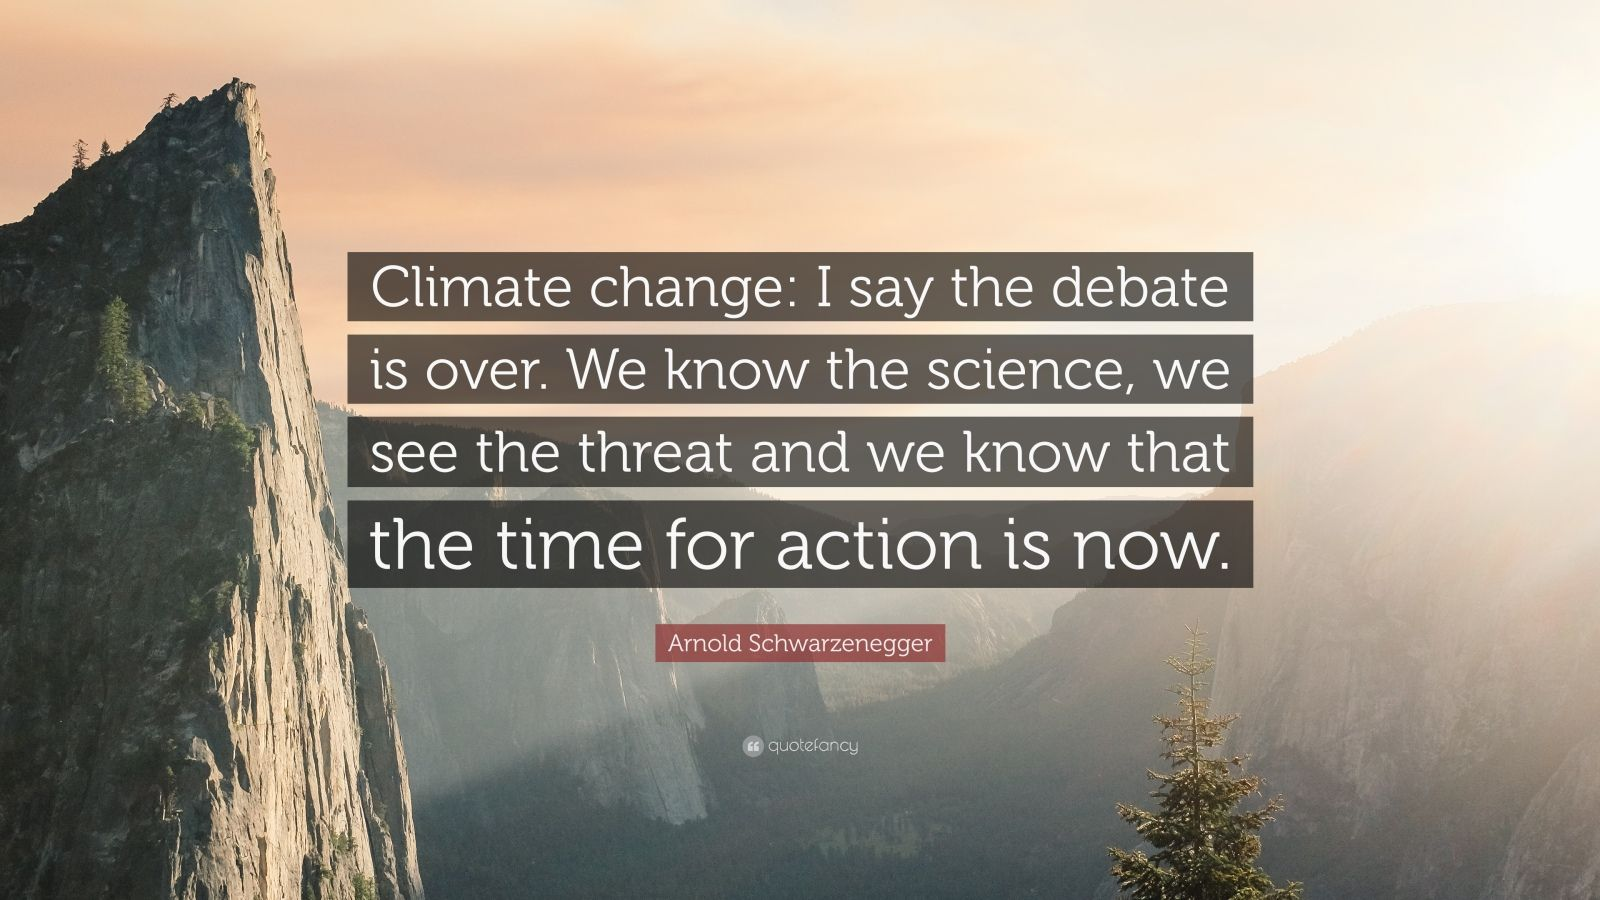 """Arnold Schwarzenegger Quote: """"Climate change: I say the debate is over. We know the science, we see the threat and we know that the time for action is now."""""""